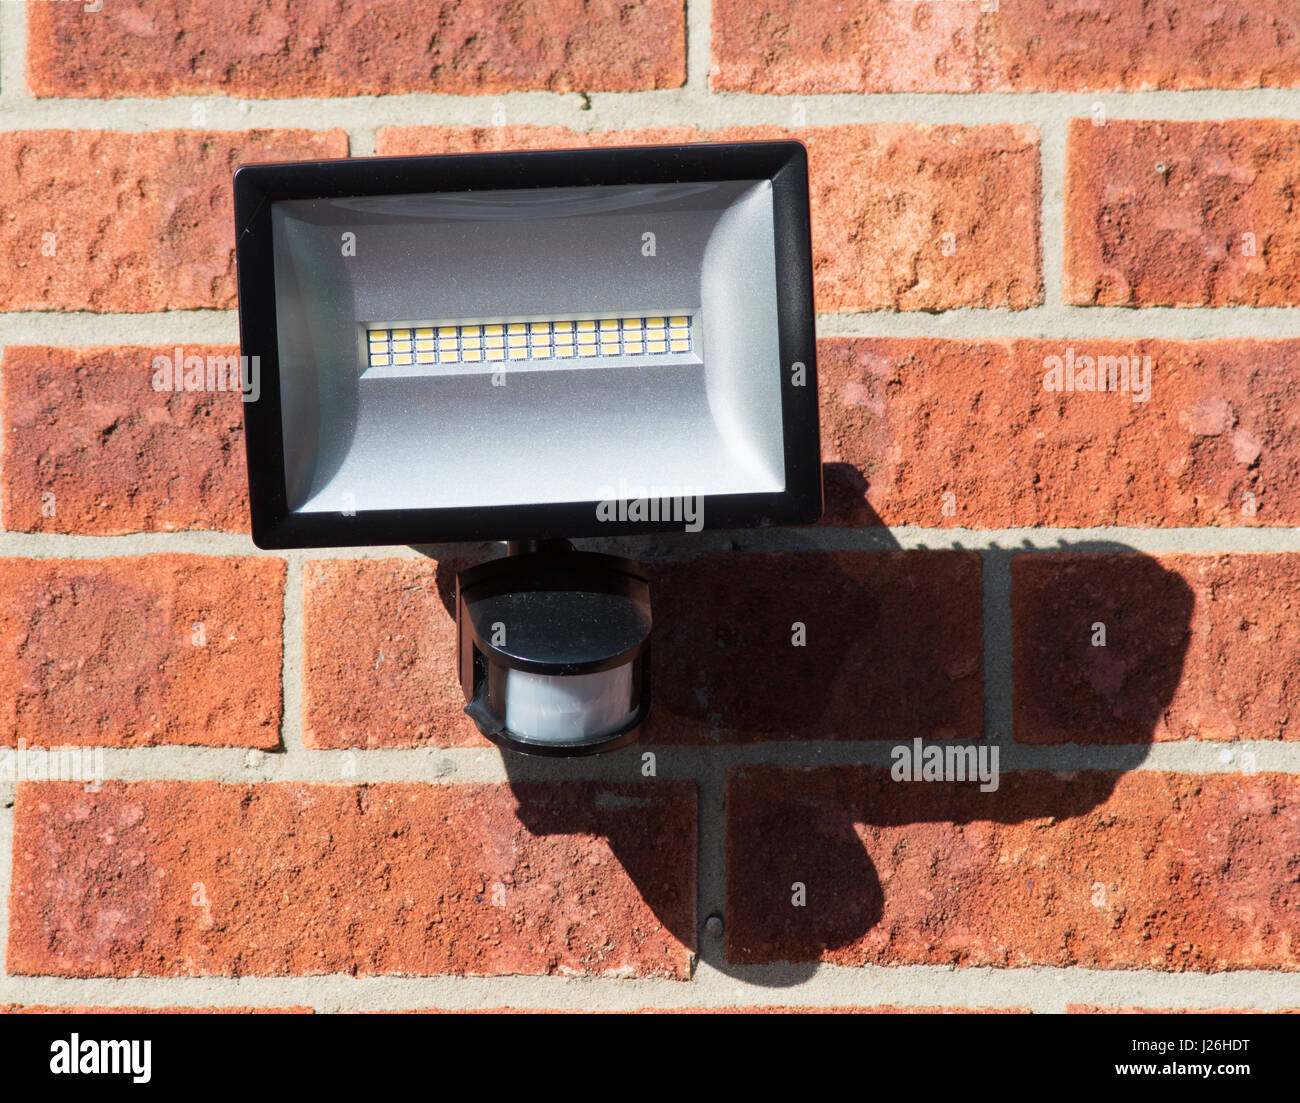 LED floodlight with PIR motion sensor, wall mounted - Stock Image